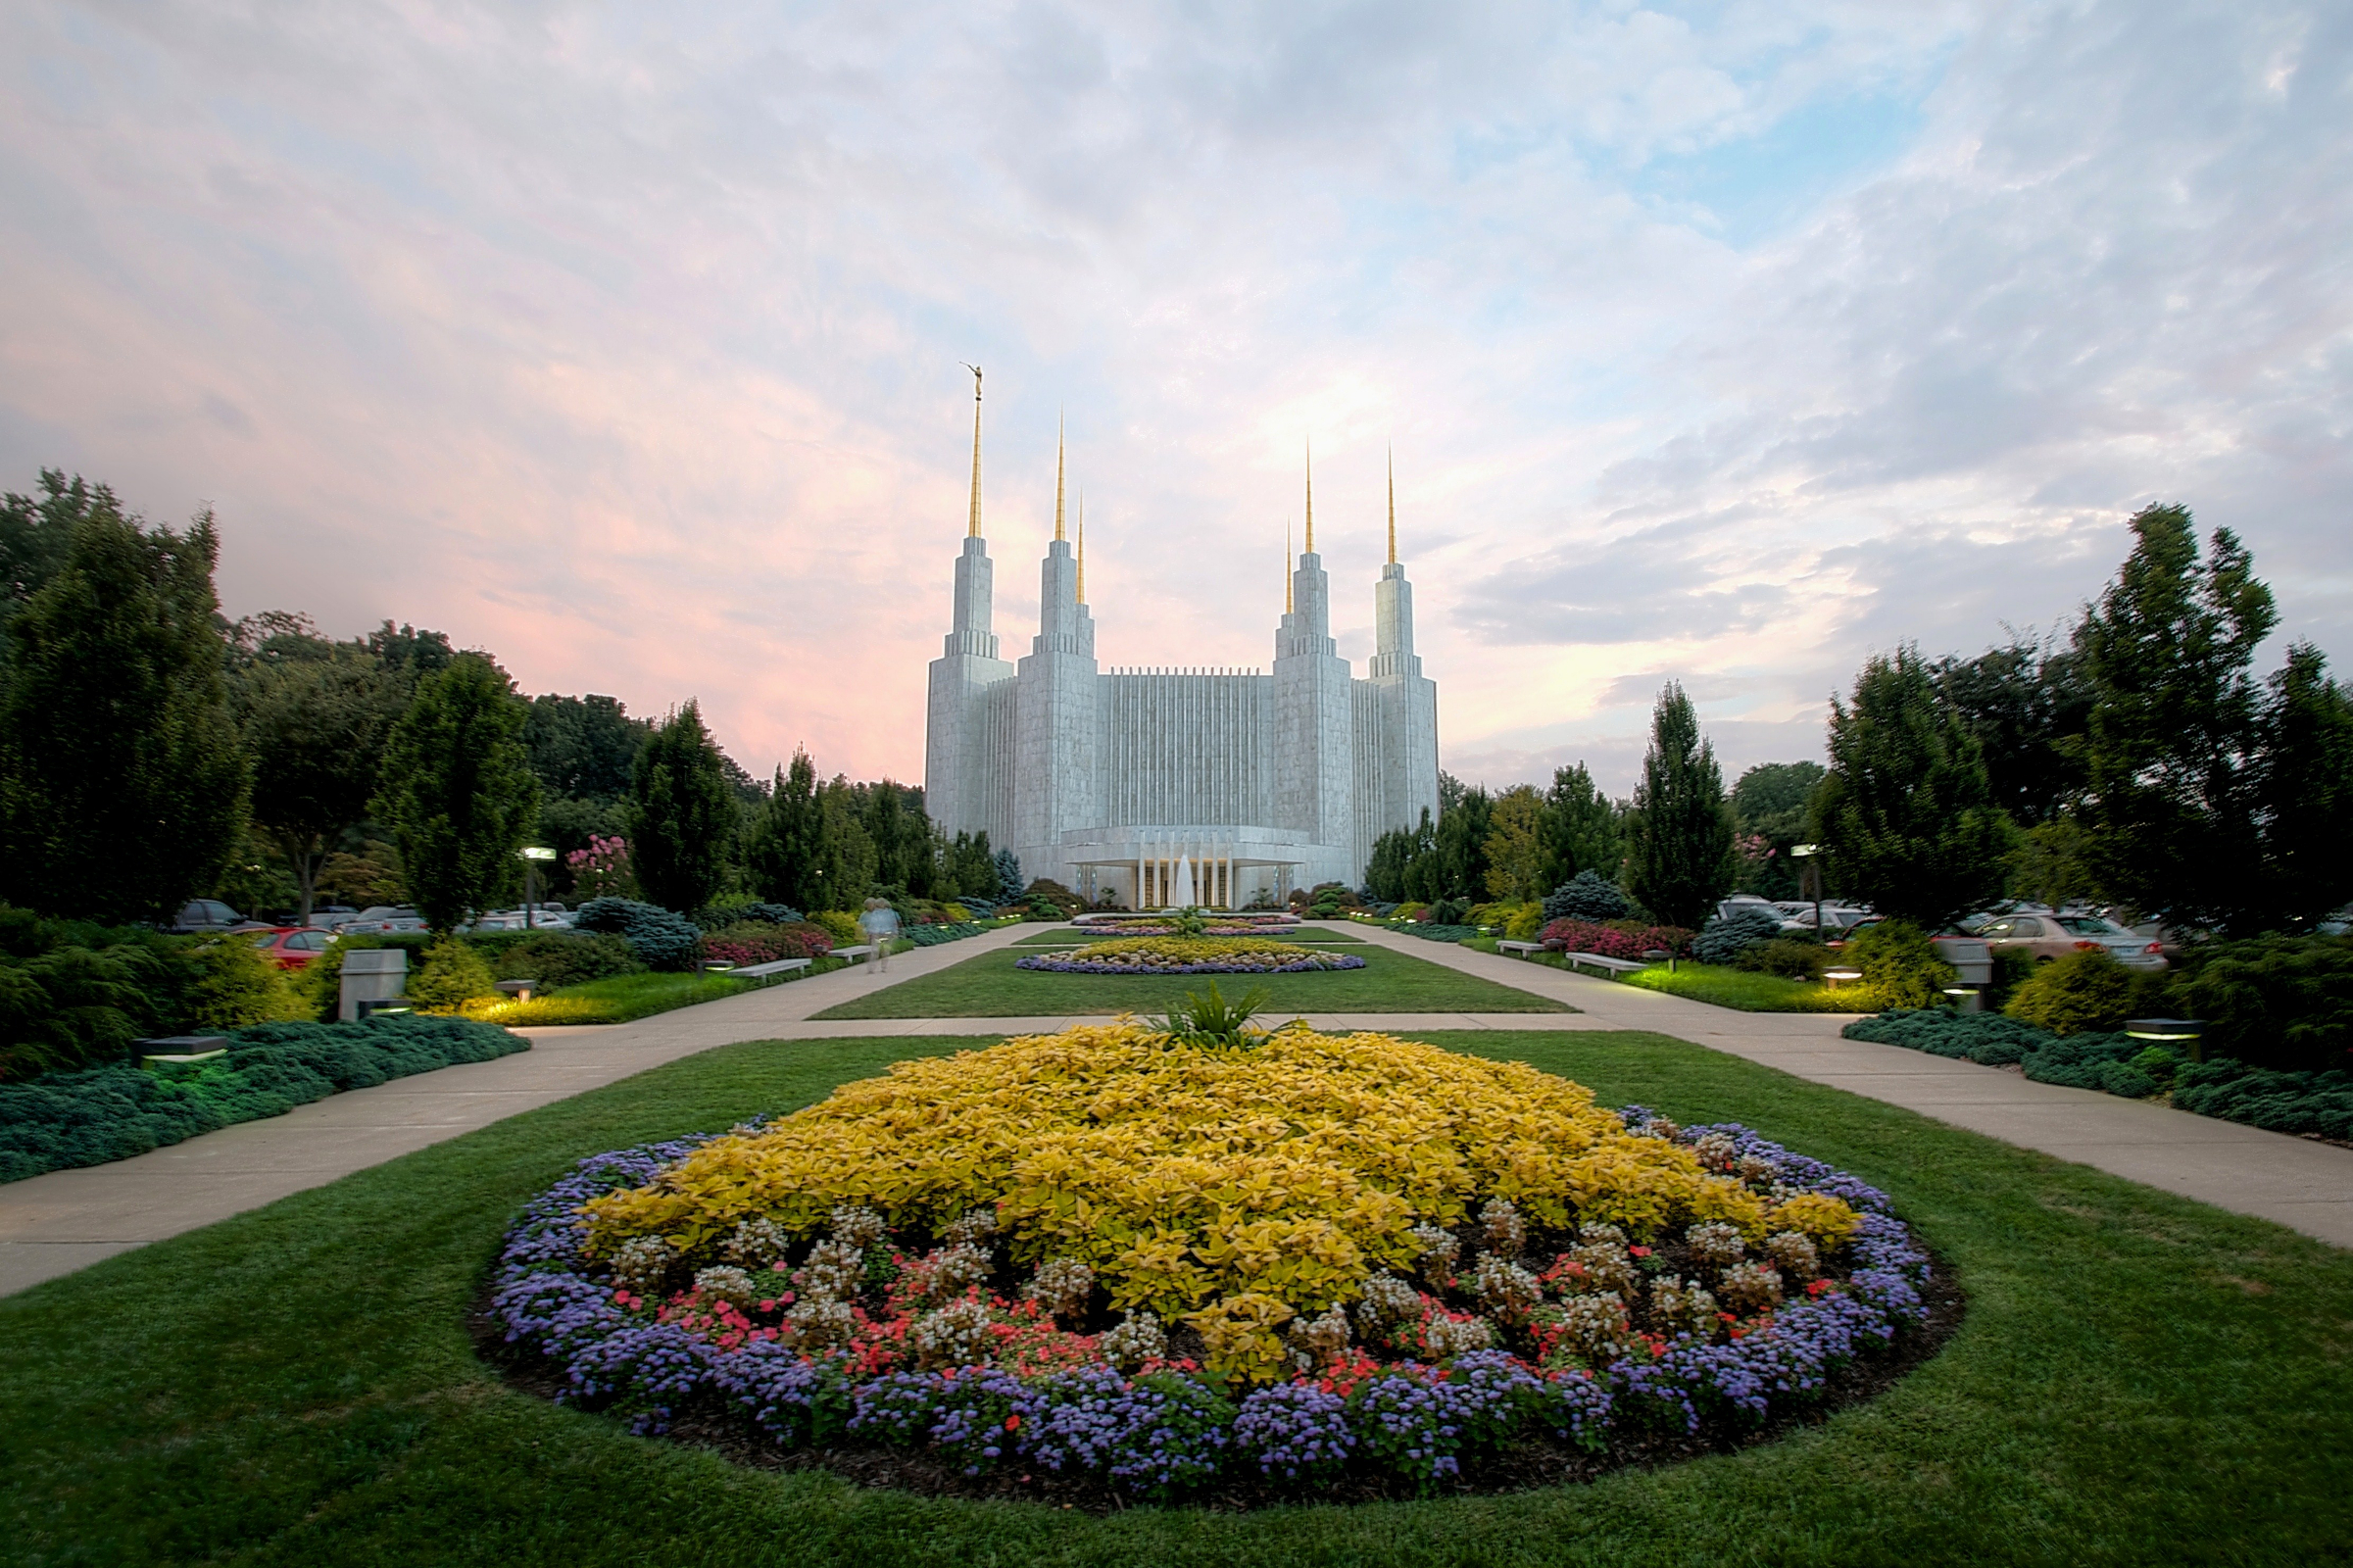 Washington d c temple entrance and scenery - Lds temple wallpaper ...